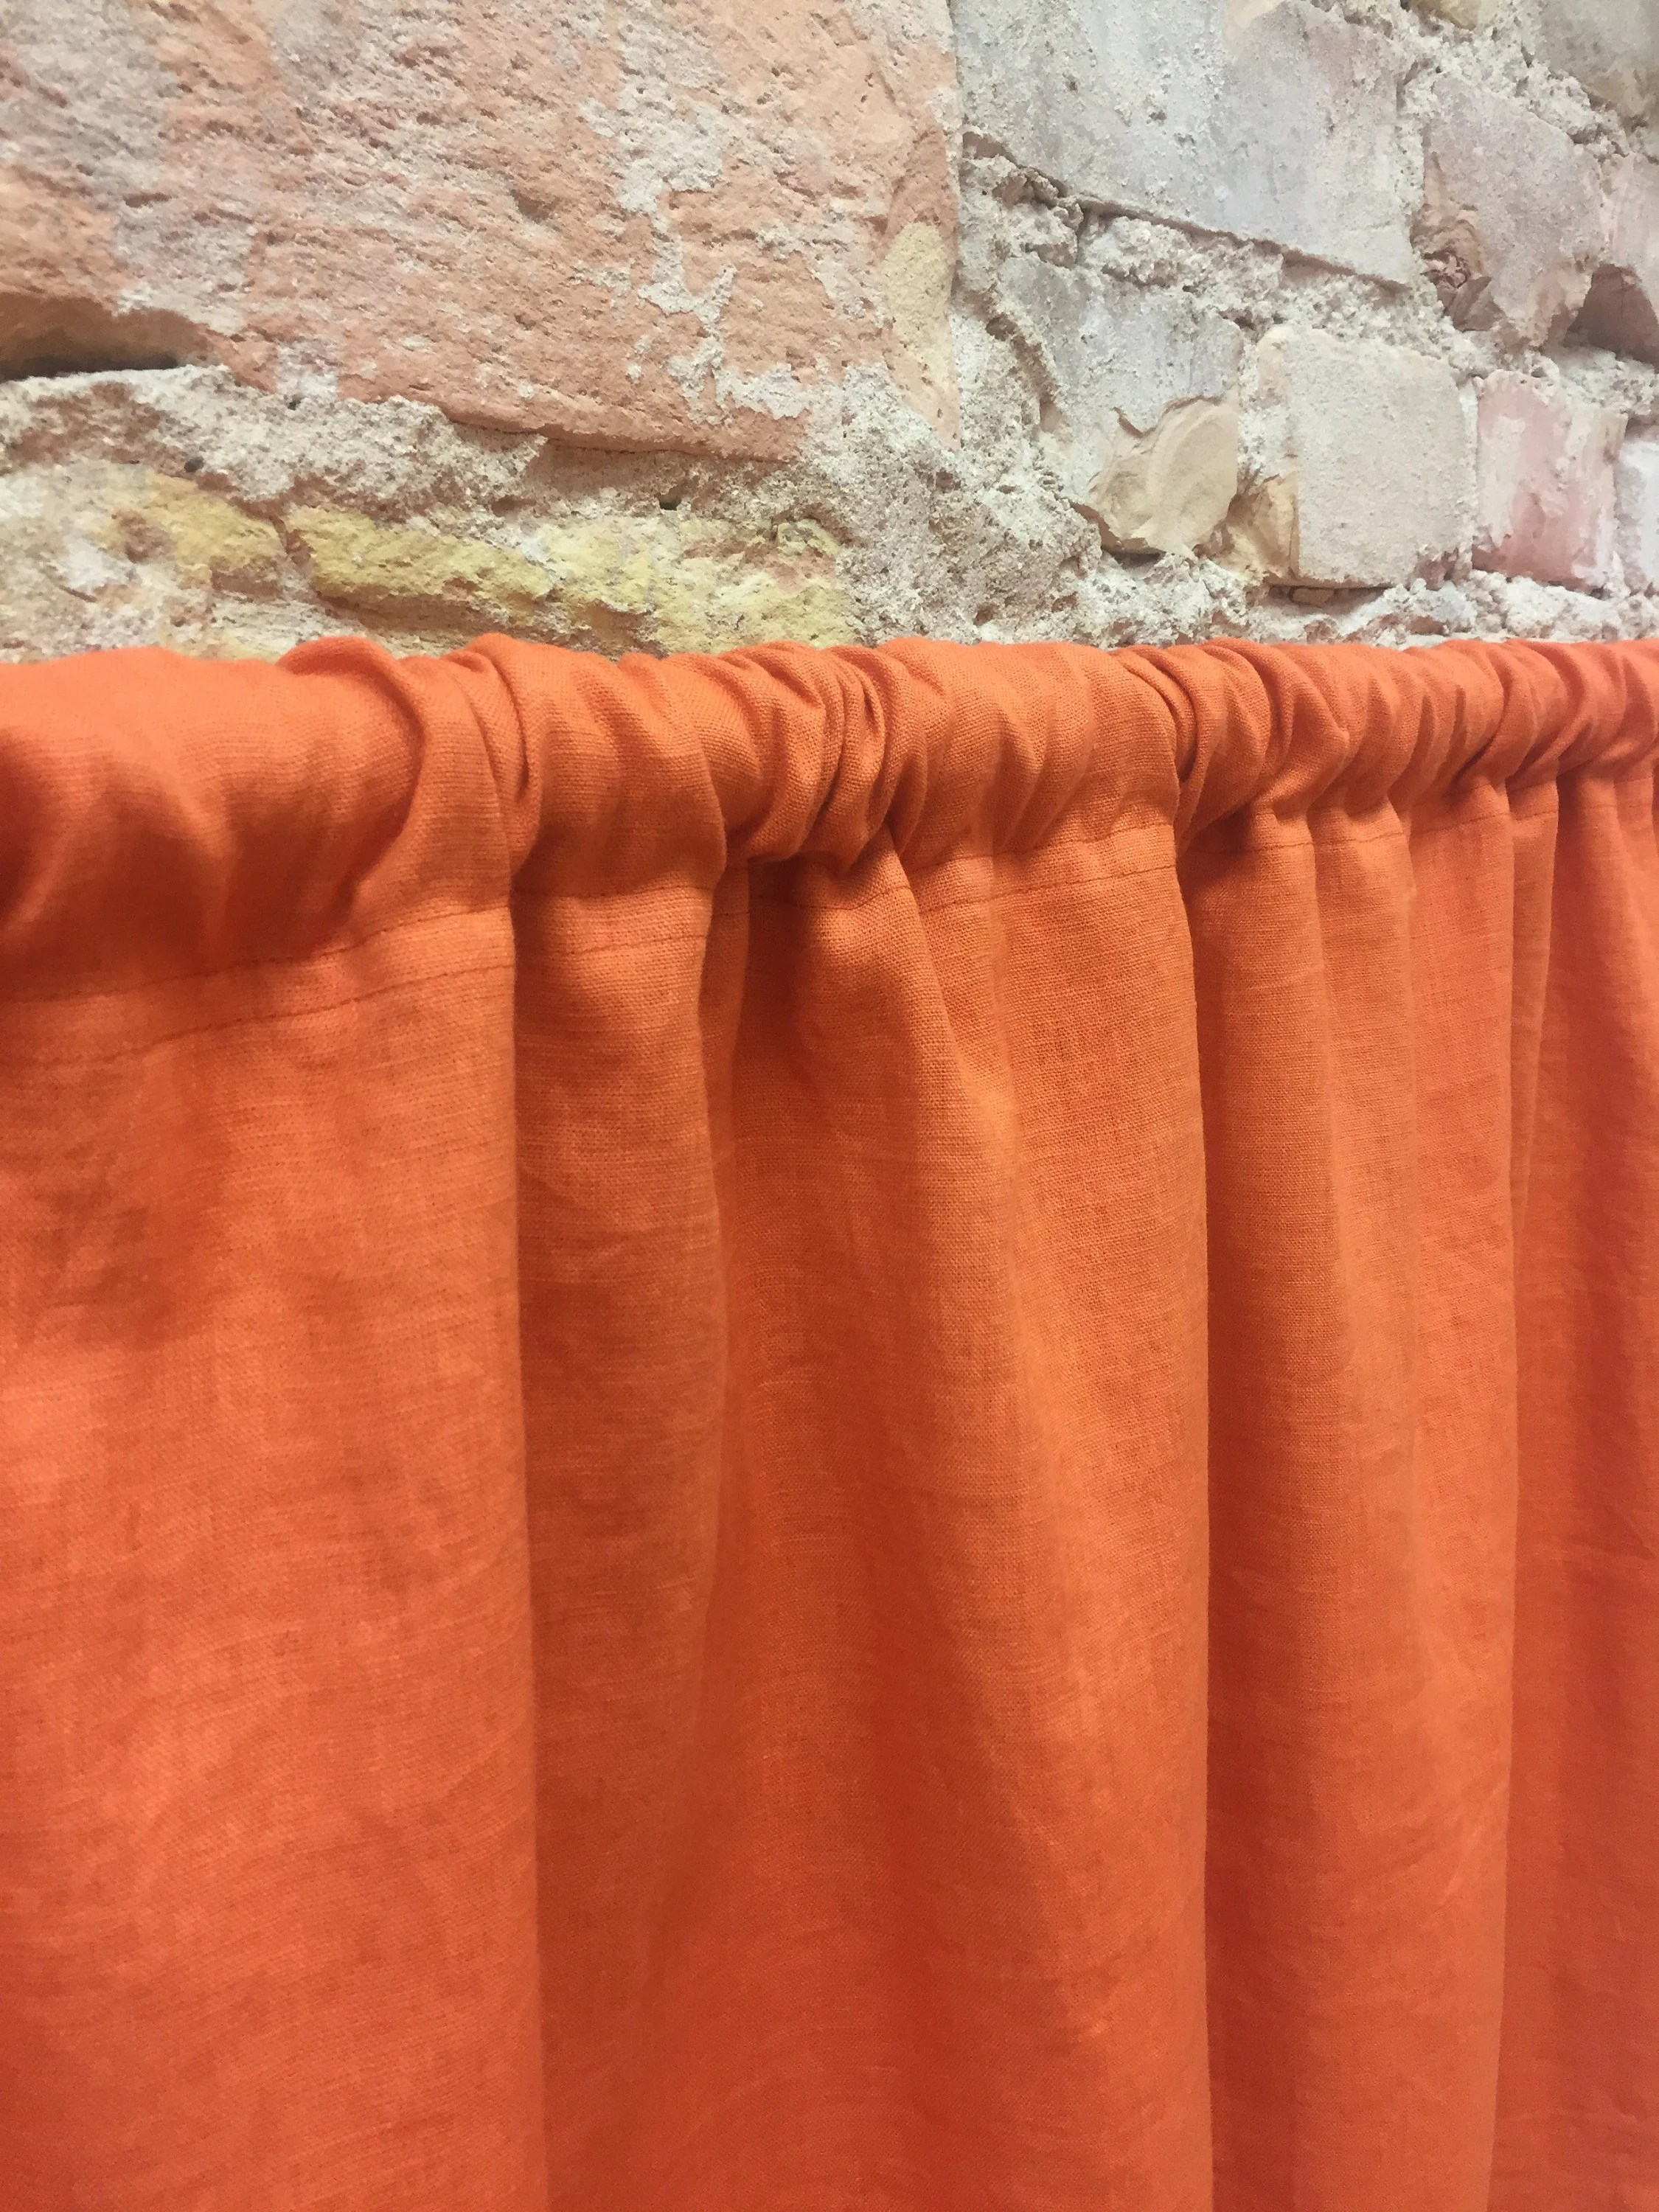 Orange Curtain Panels Orange Linen Curtain Panel Orange Curtain Panels Orange Drapes Custom Curtains Door Curtain Panel Stone Wash Linen Curtains Panel